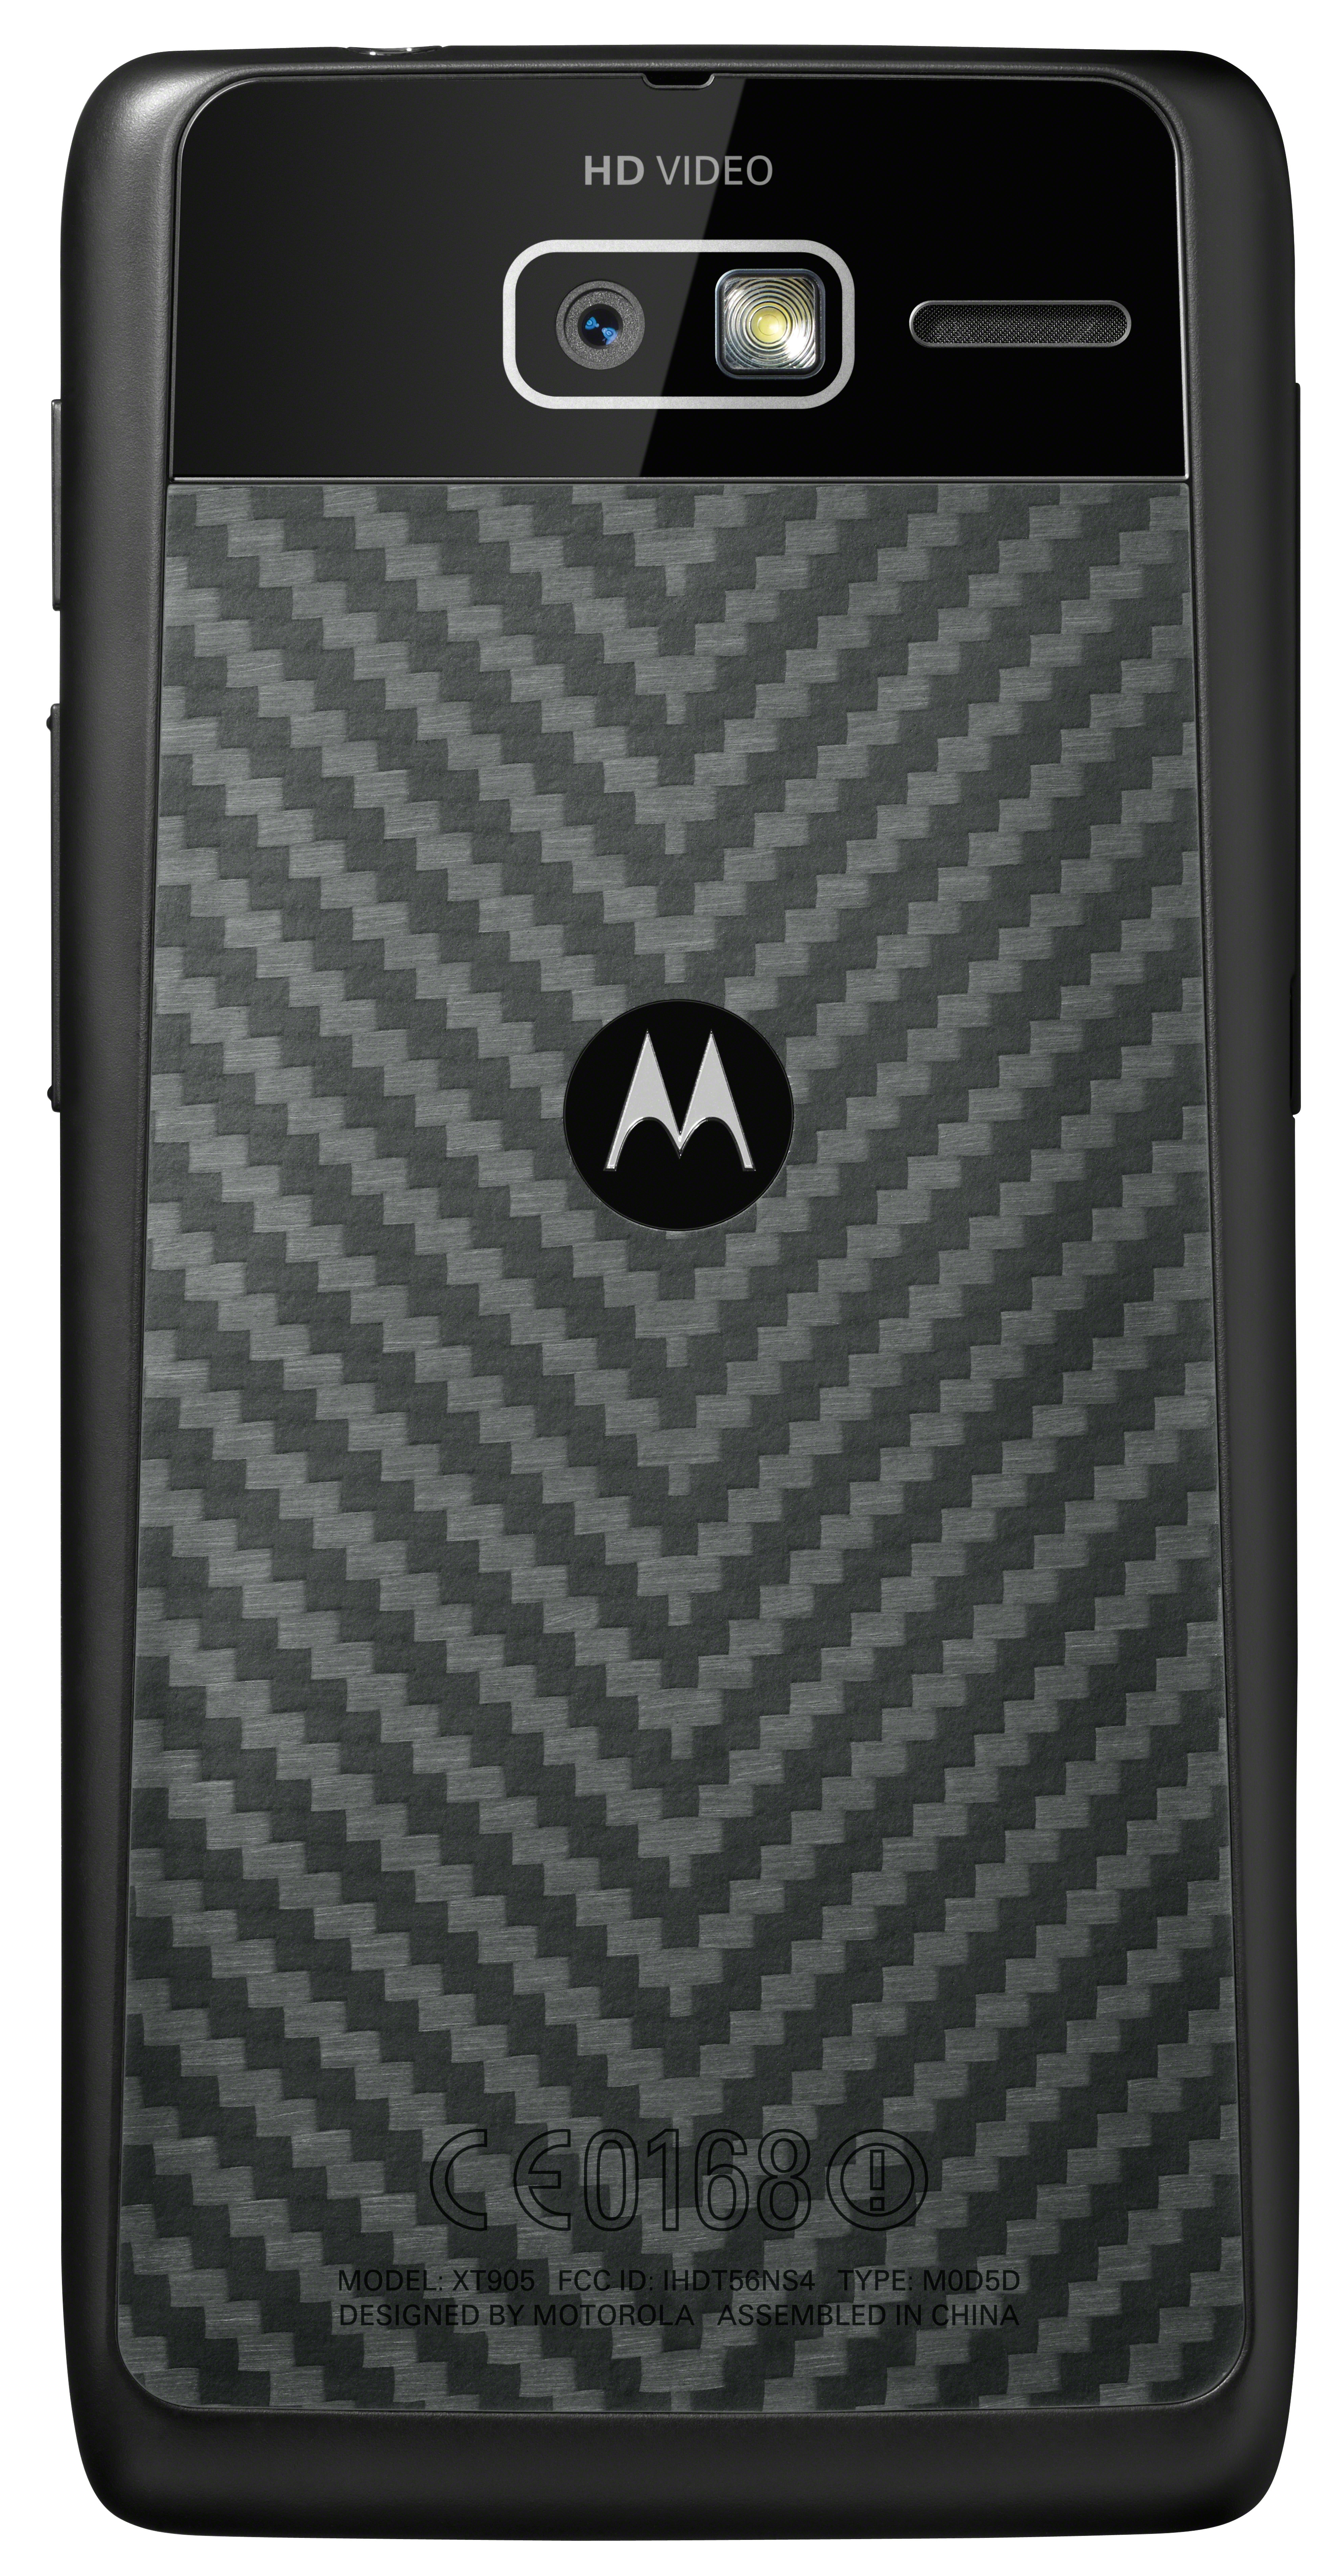 Phone Motorola All Android Phones motorola droid razr m phandroid gets its first android 4 1 leak download